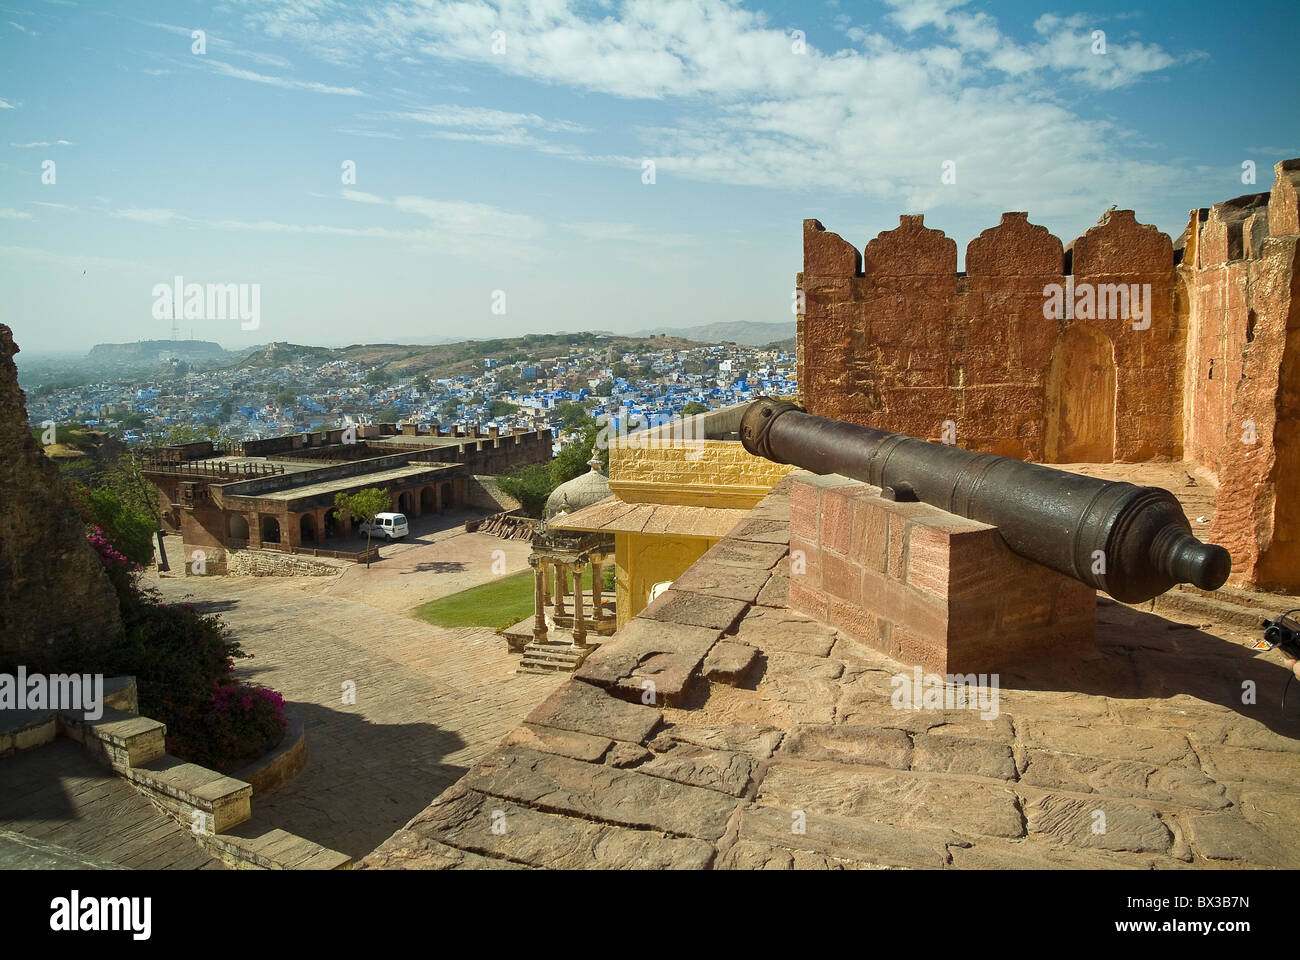 Old cannon at Mehrangarh Fort facing out over the town of Jodhpur, Rajasthan, India - Stock Image